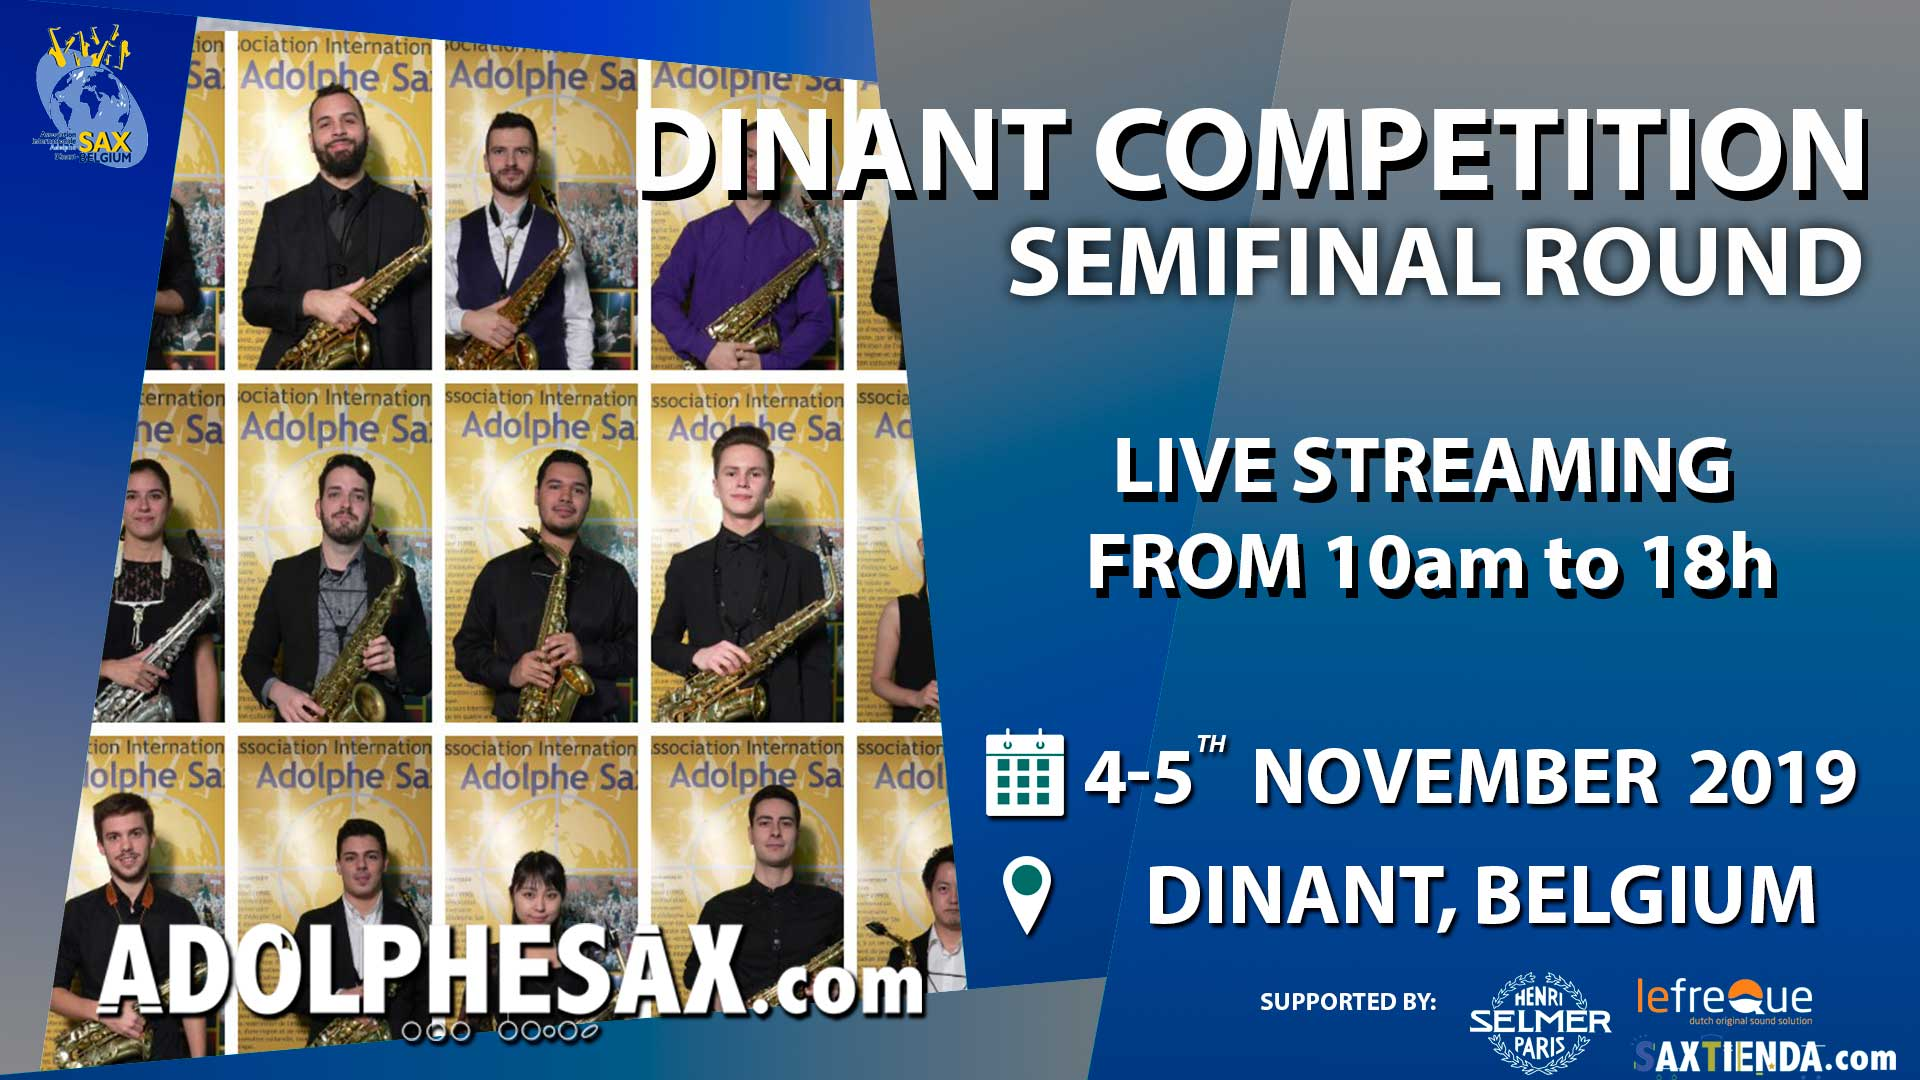 Adolphesax Saxophone competition semifinal